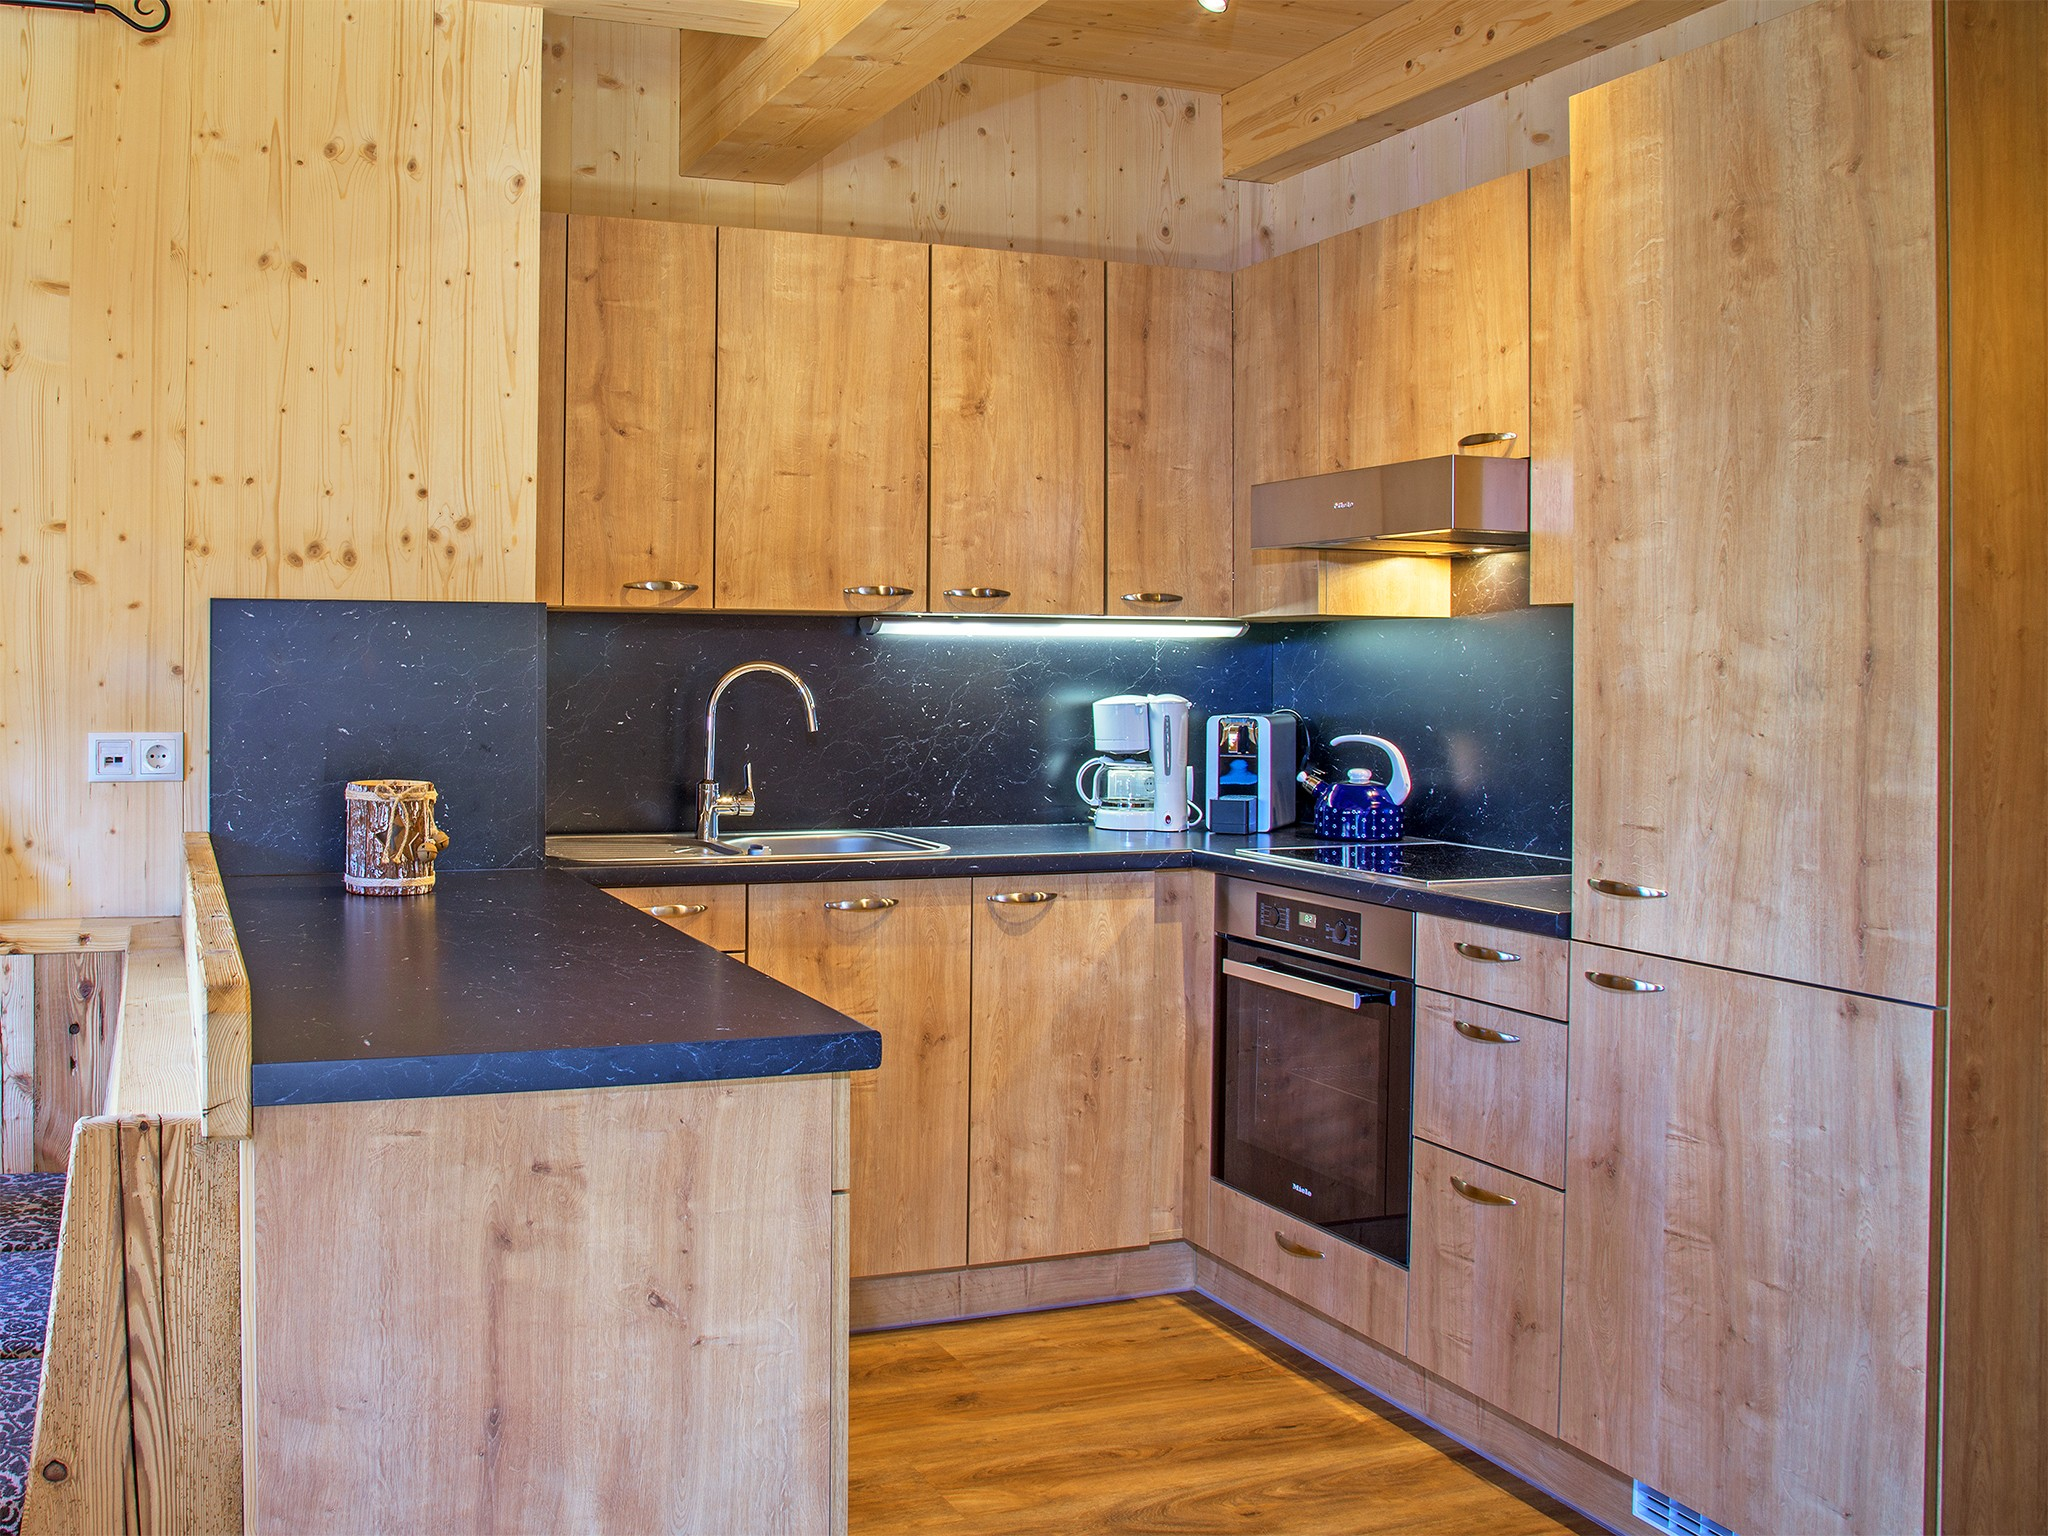 Zillertal Star Chalet - kitchen